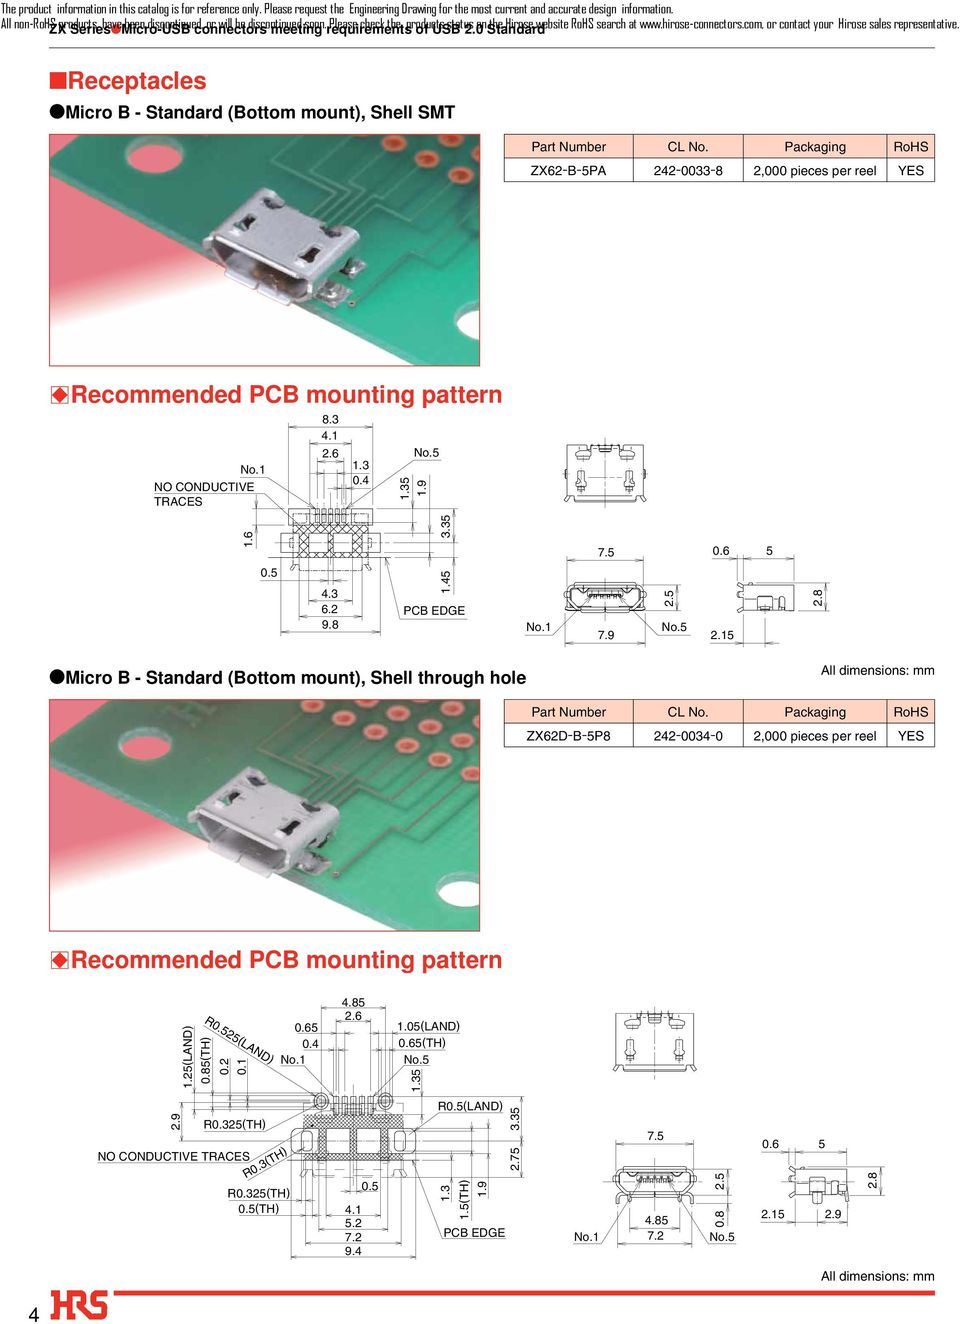 Receptacles Micro B - Standard (Bottom mount), Shell SMT ZX62-B-5PA 242-0033- 2,000 pieces per reel YES BRecommended PCB mounting pattern NO CONDUCTIVE TRACES.3 4.1 0.4 5 1.9 1.6 0.5 4.3 6.2 9. 1.45 3.